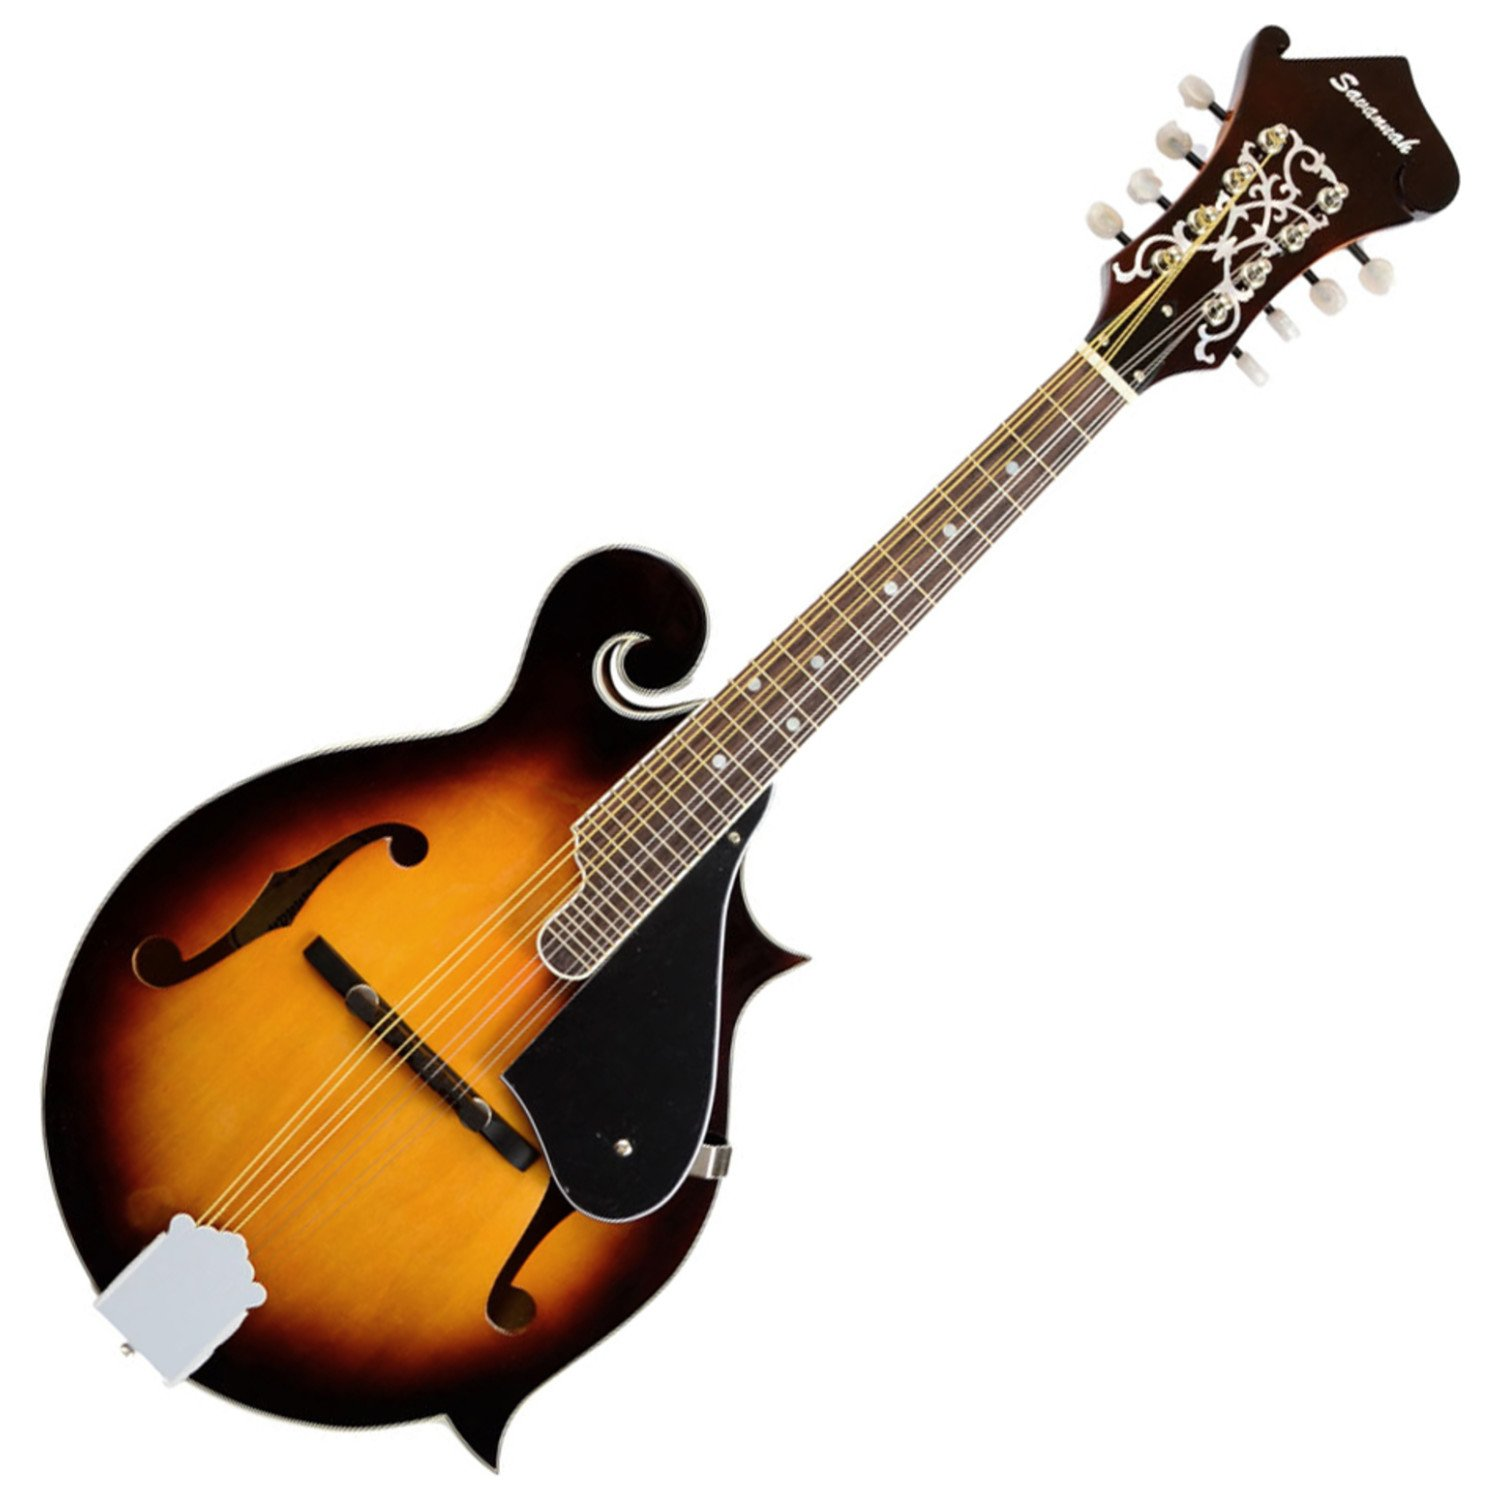 Savannah SF-100 F-Model Mandolin, Sunburst